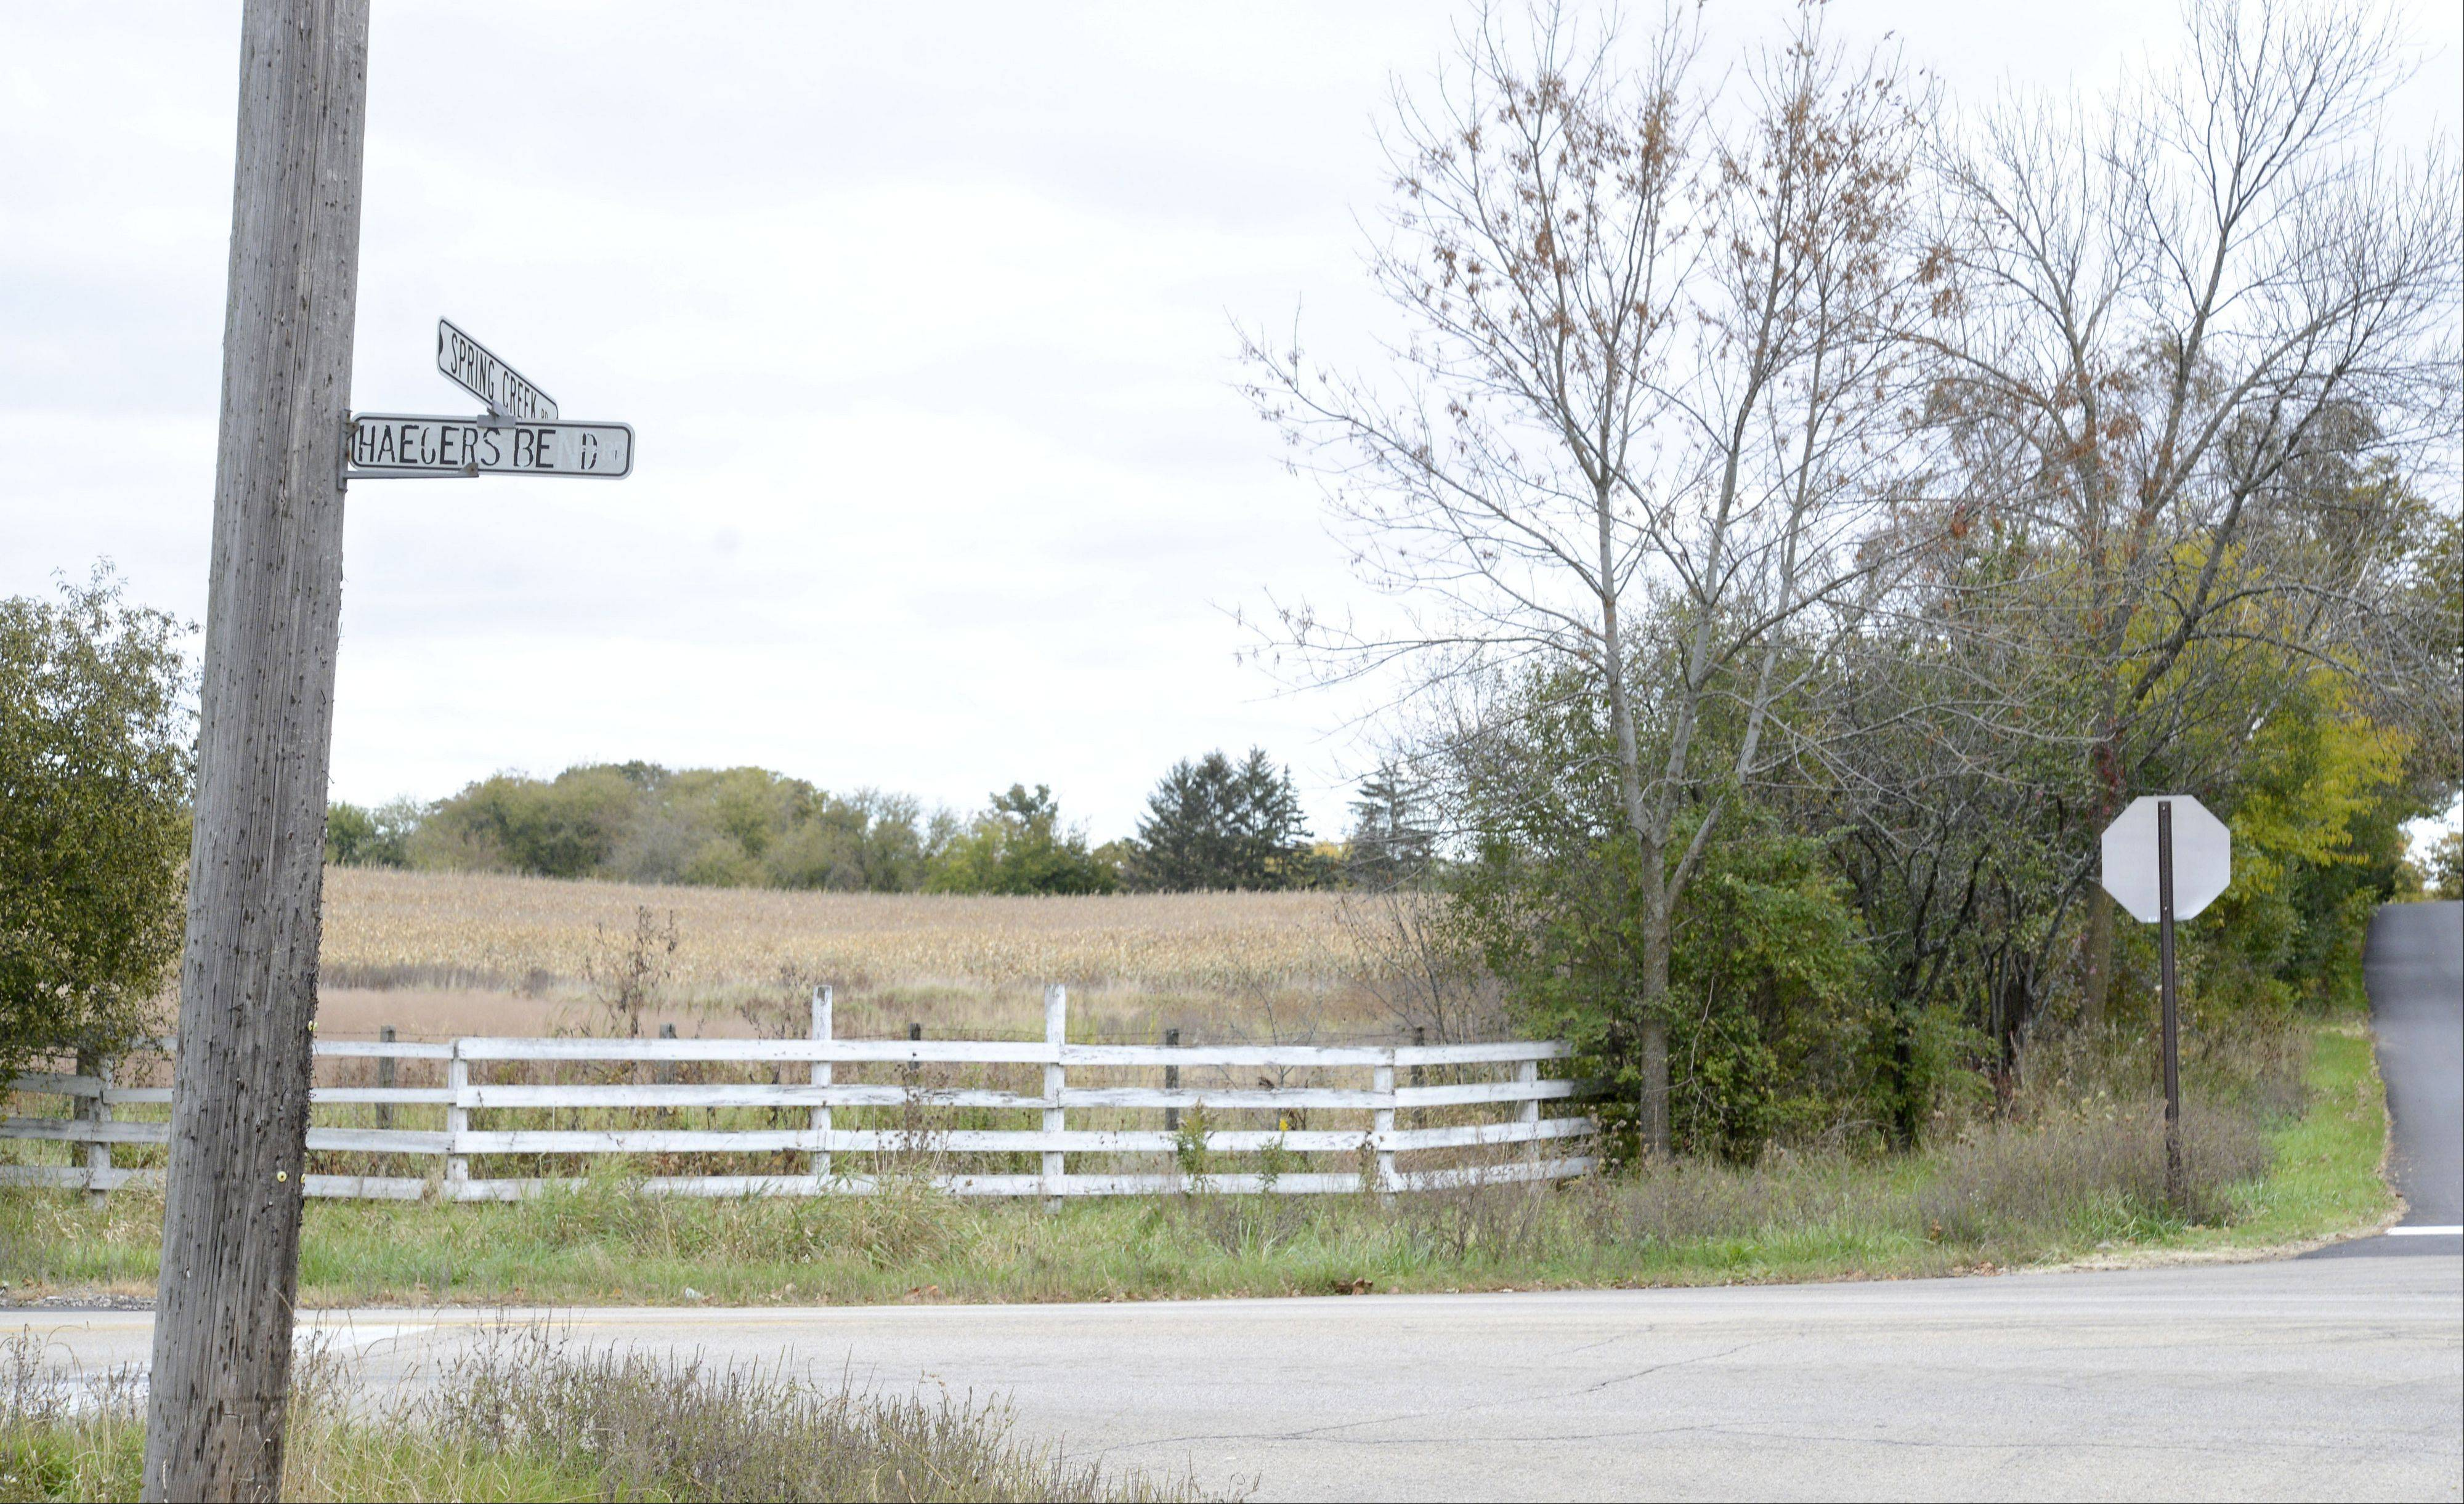 The Fritz Duda Co.'s 602 acres near Barrington Hills is on the market for $17 million. The Dallas-based company and the village waged a long and intense legal fight that led to much of the property's deannexation from Barrington Hills.